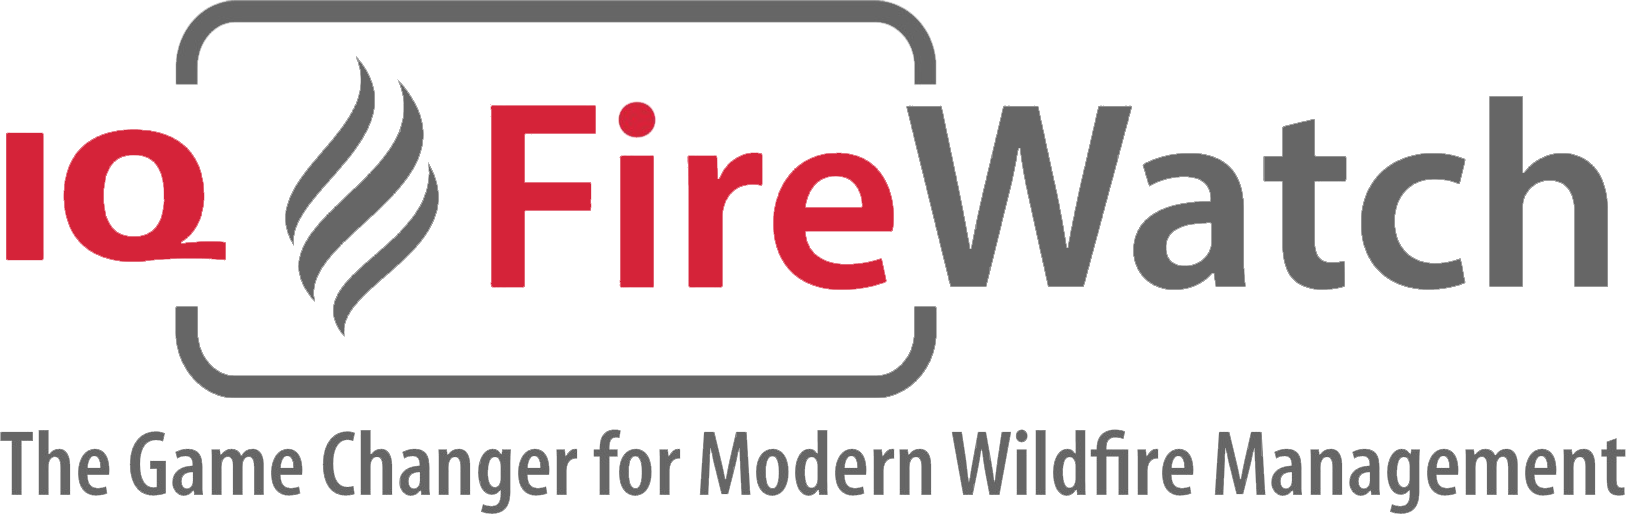 IQ FireWatch: The Game Changer for Modern Fire Management